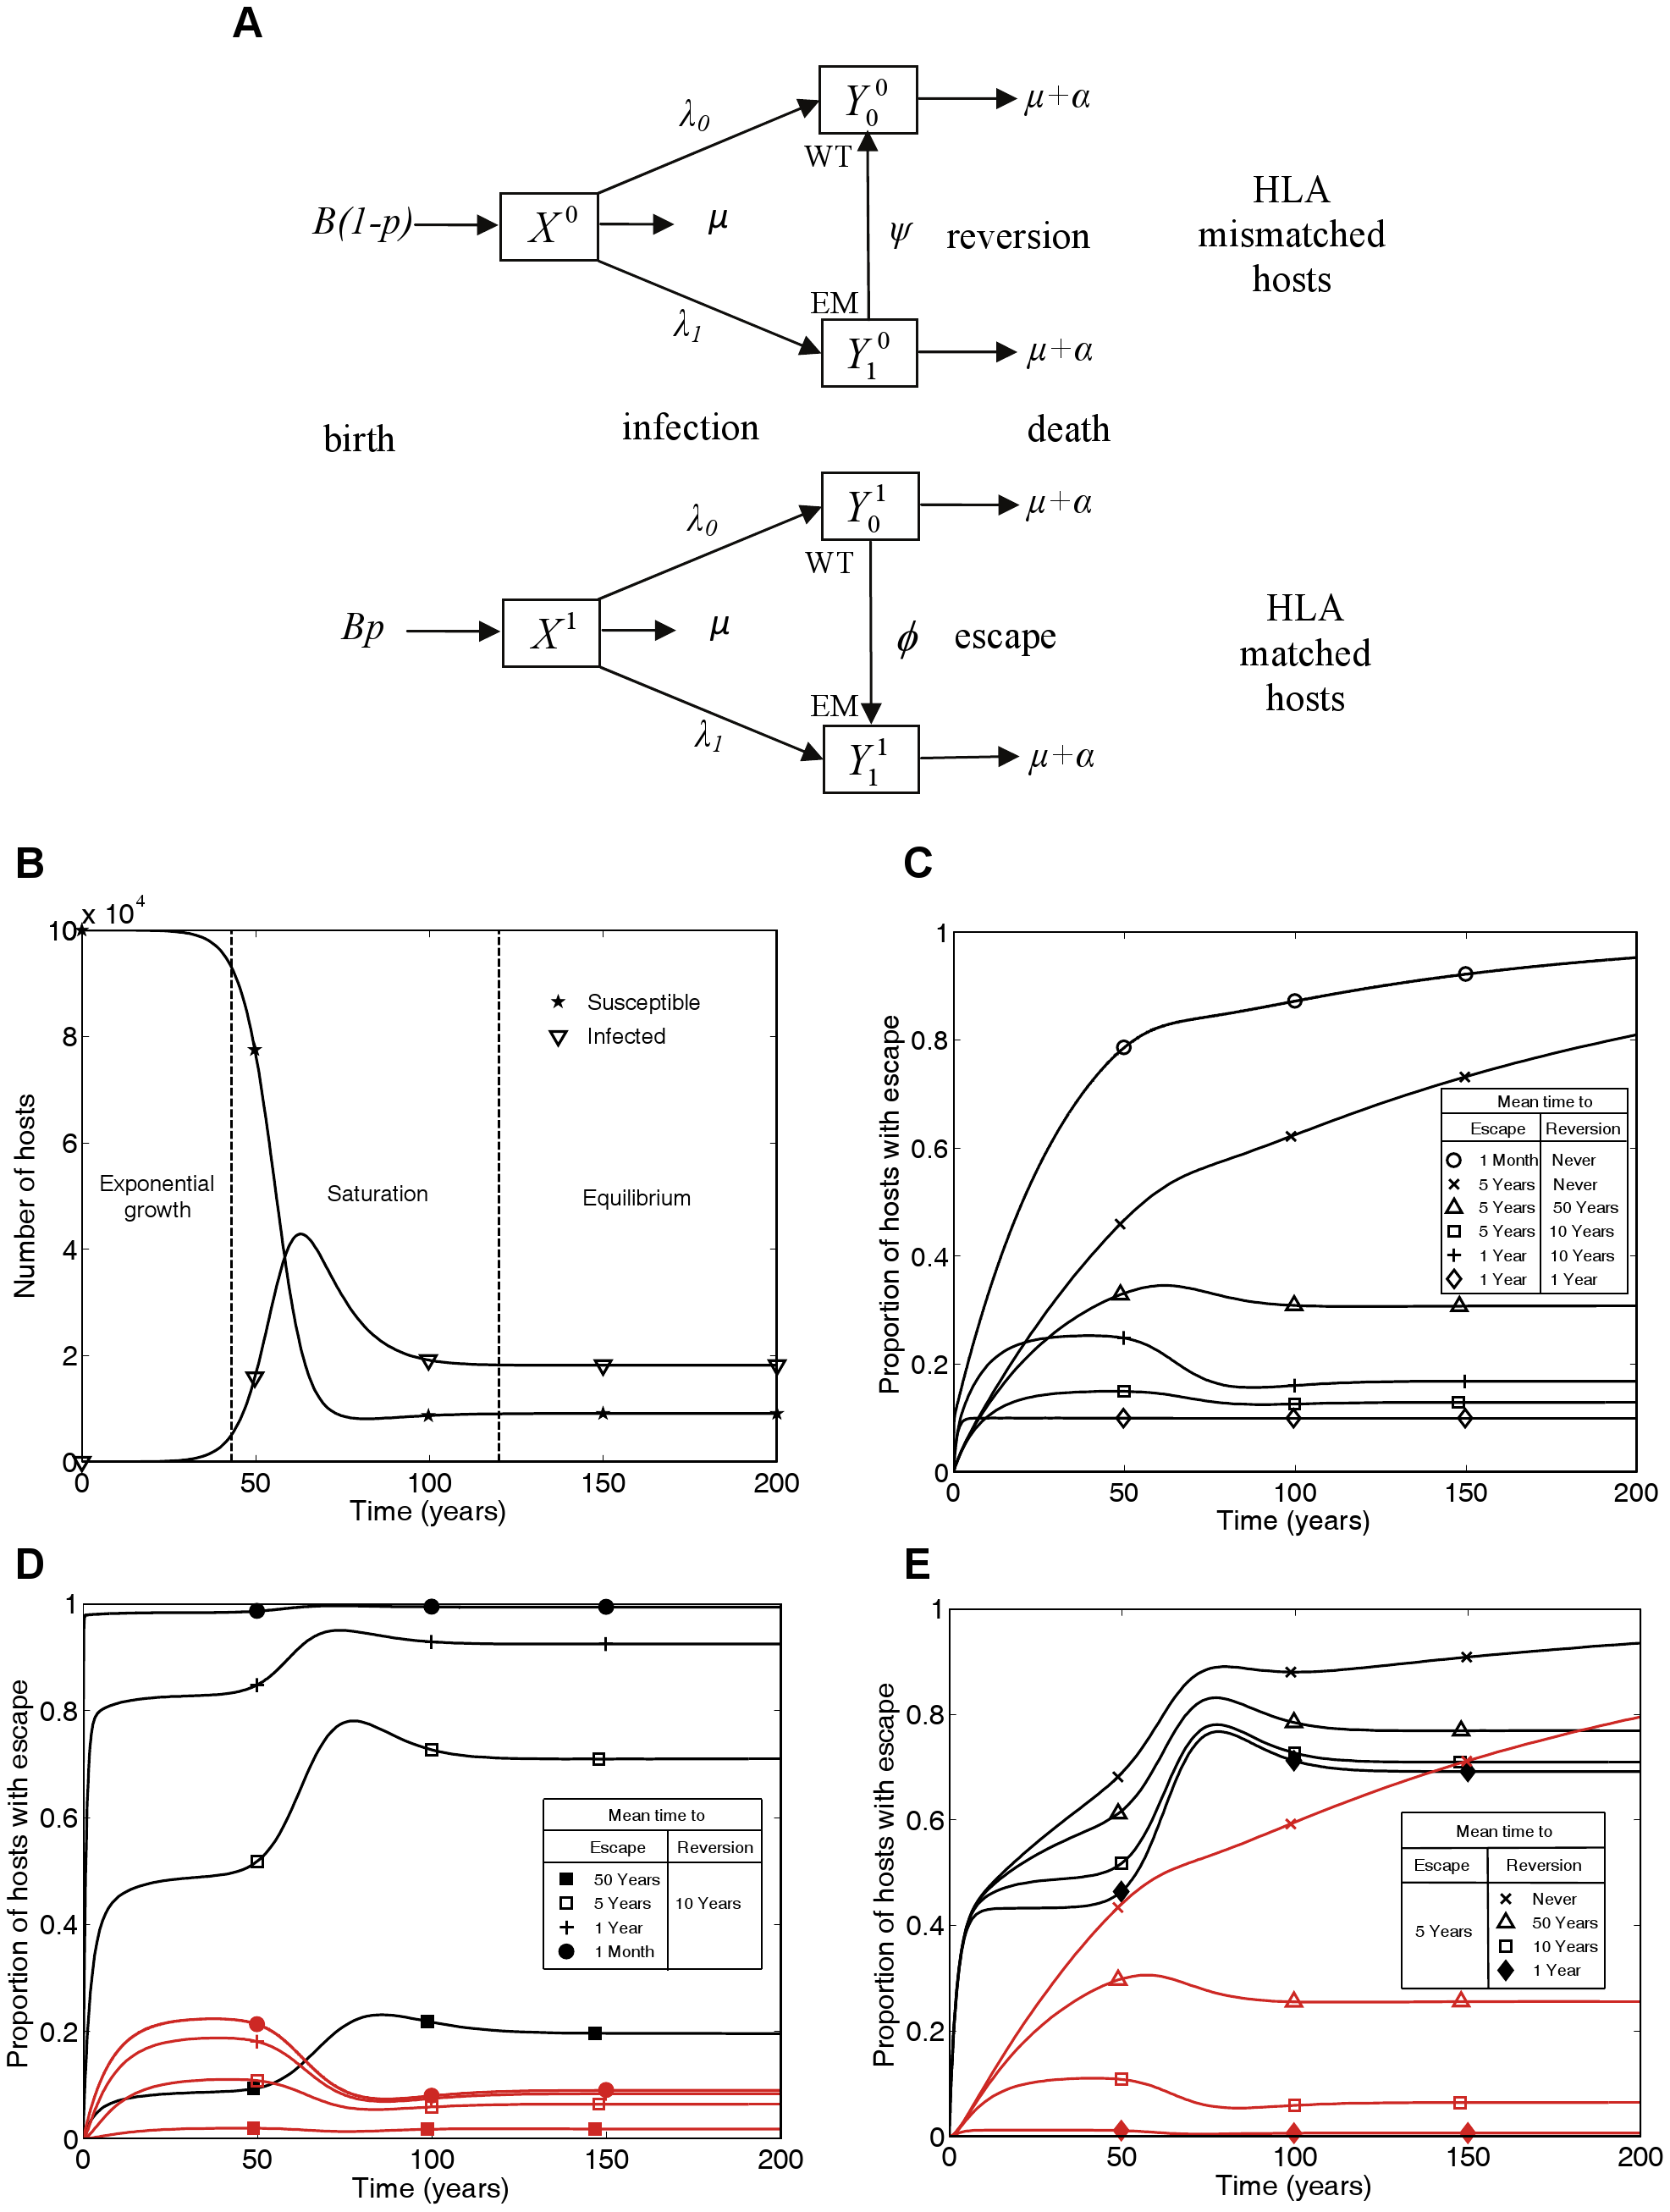 A mathematical model of within-host evolution and between-host transmission of escape mutants at a single CTL epitope.